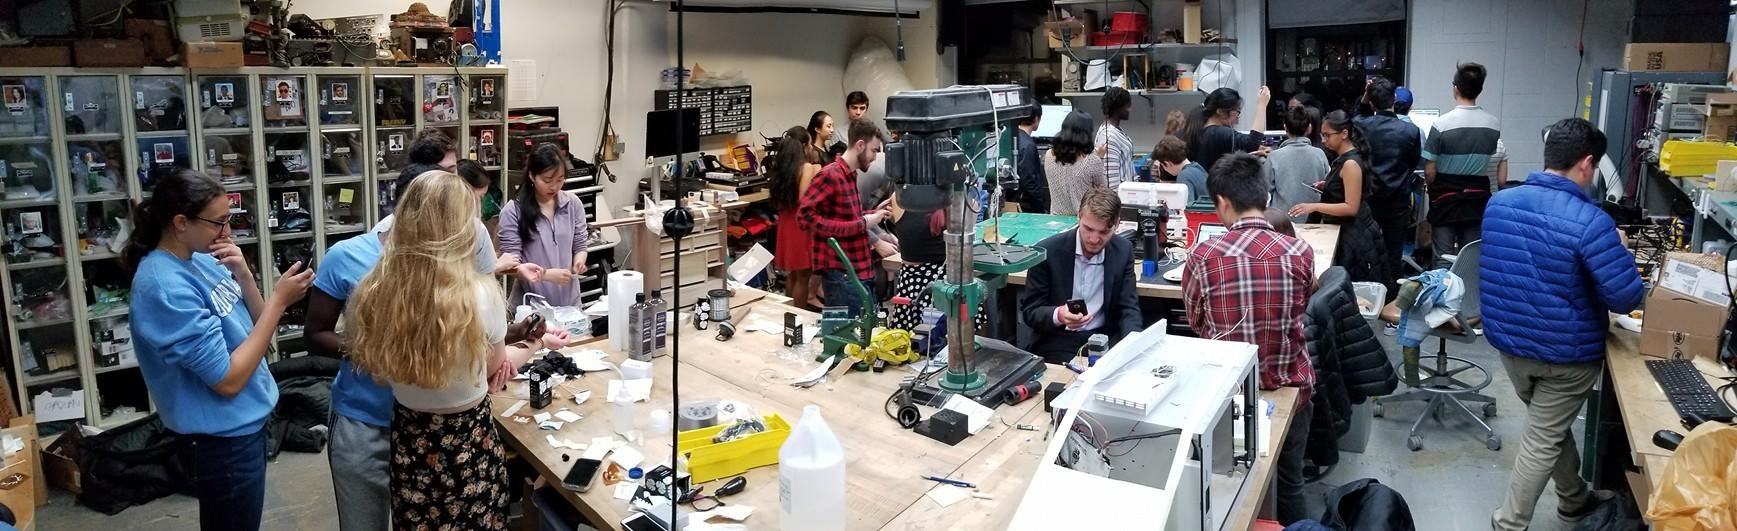 Students in a workshop surrounded by tools